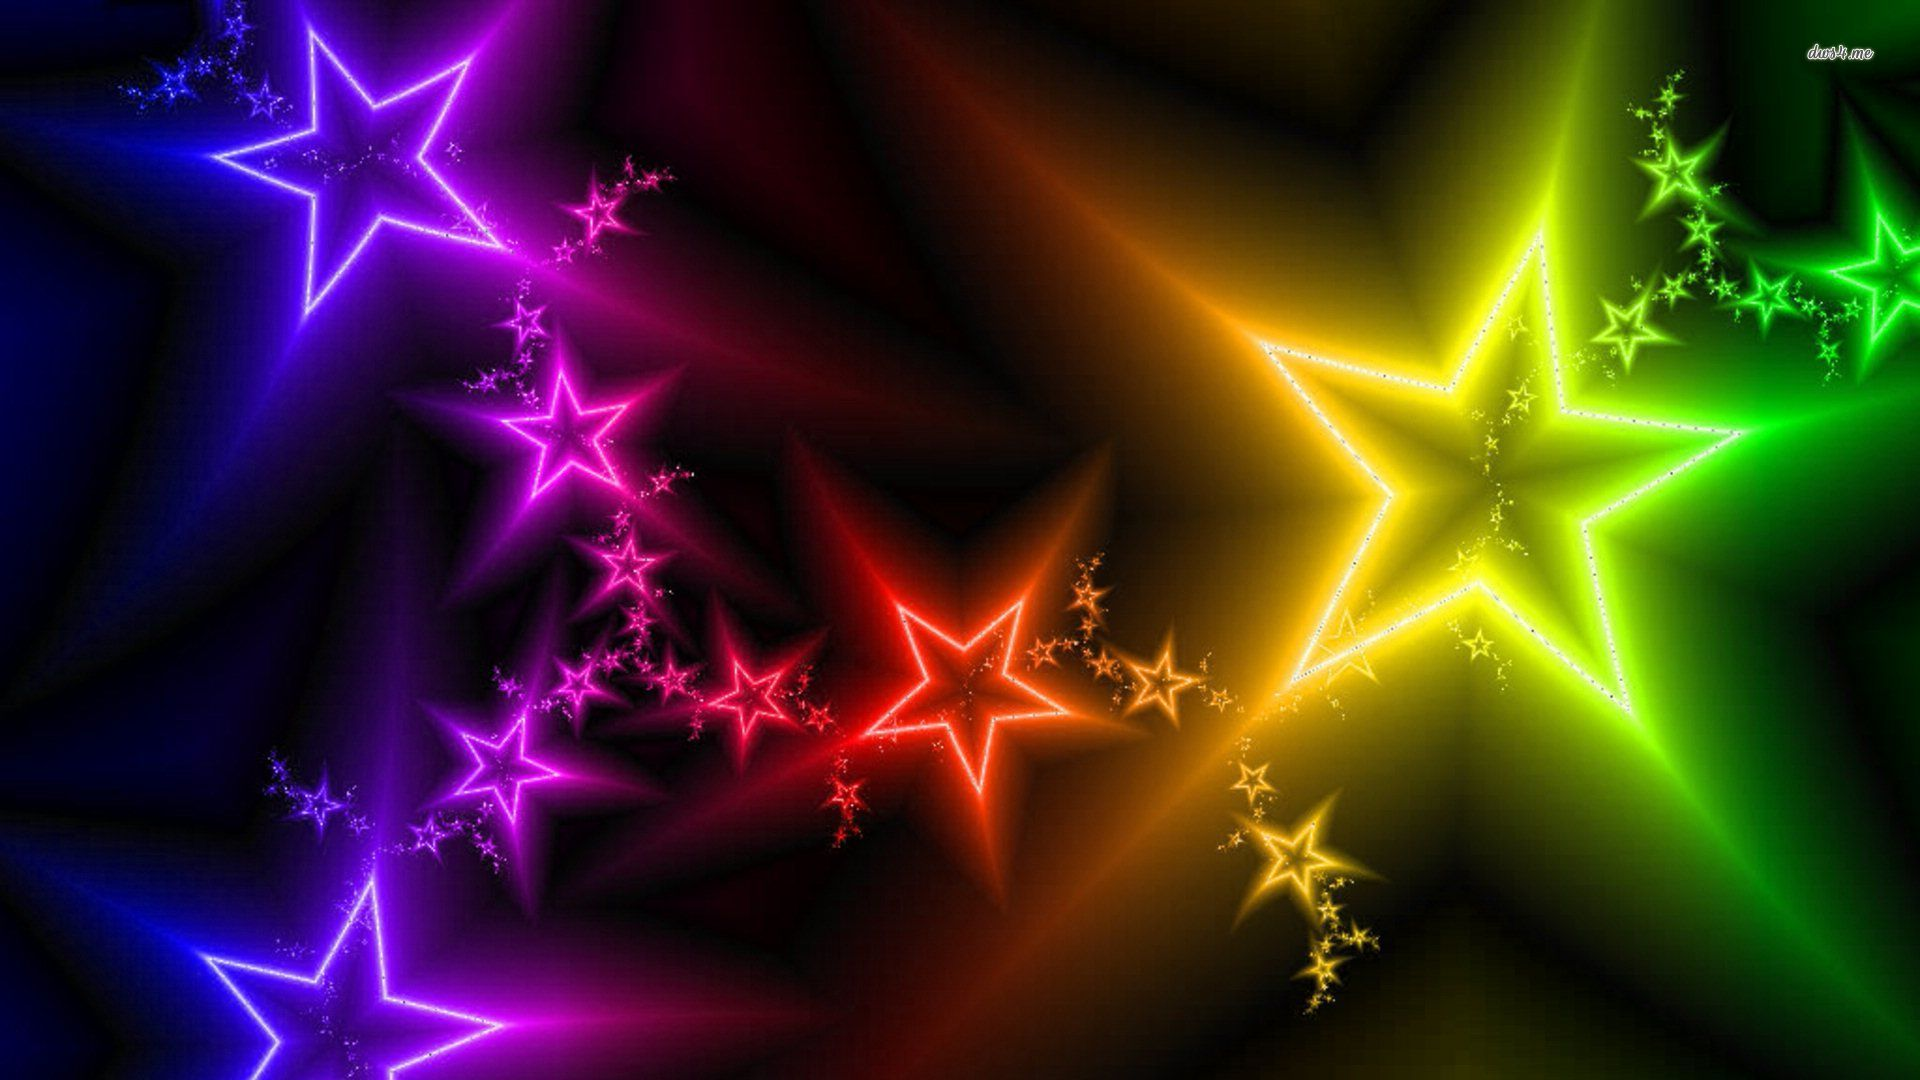 backgrounds stars (28 wallpapers) – adorable wallpapers